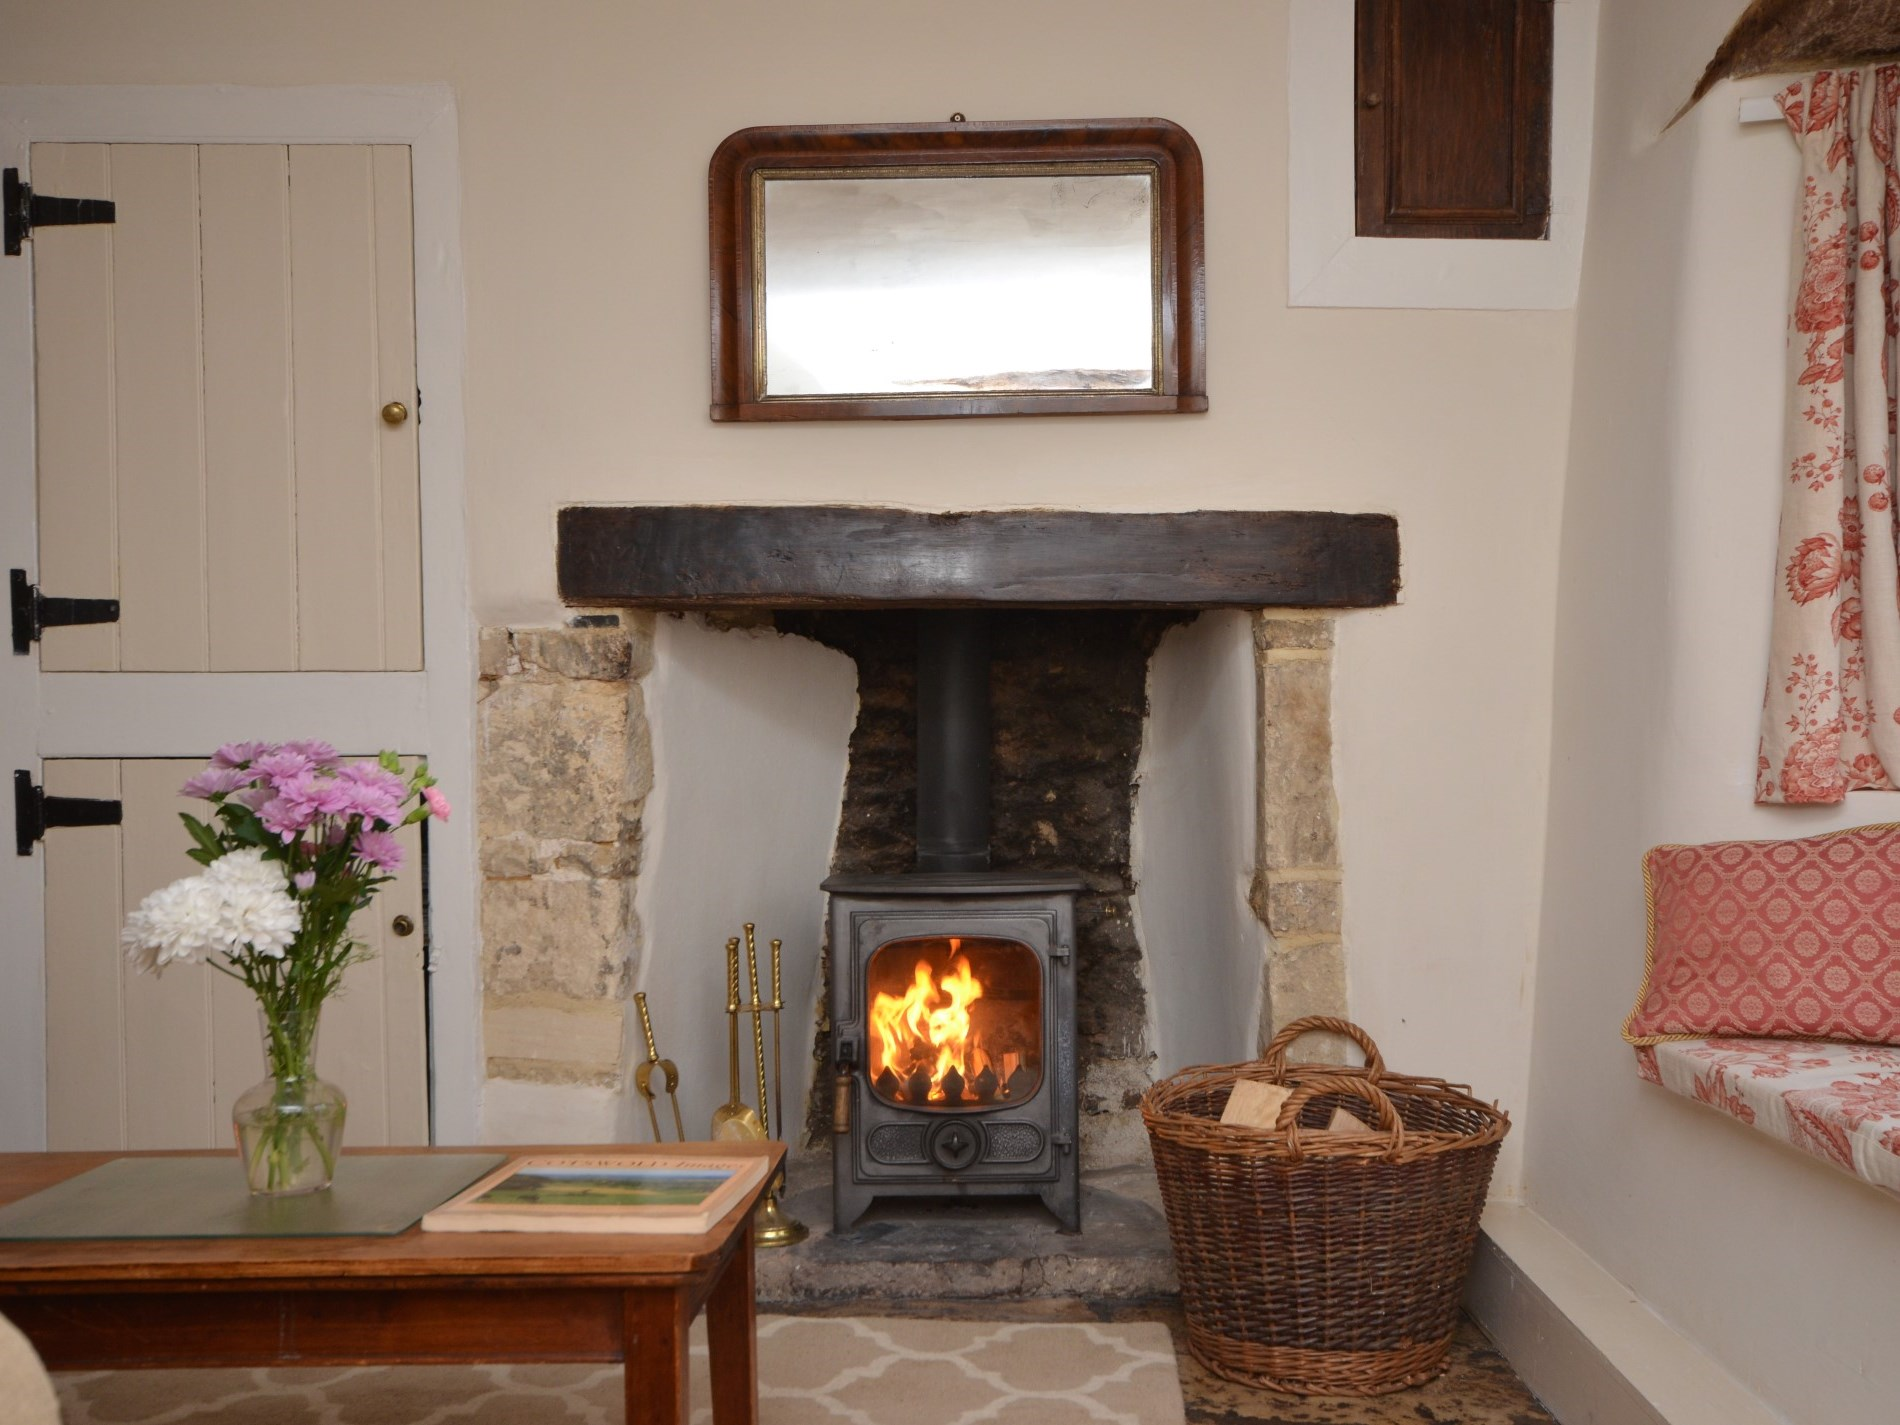 Cosy up infront of the wood burner after a day of exploring